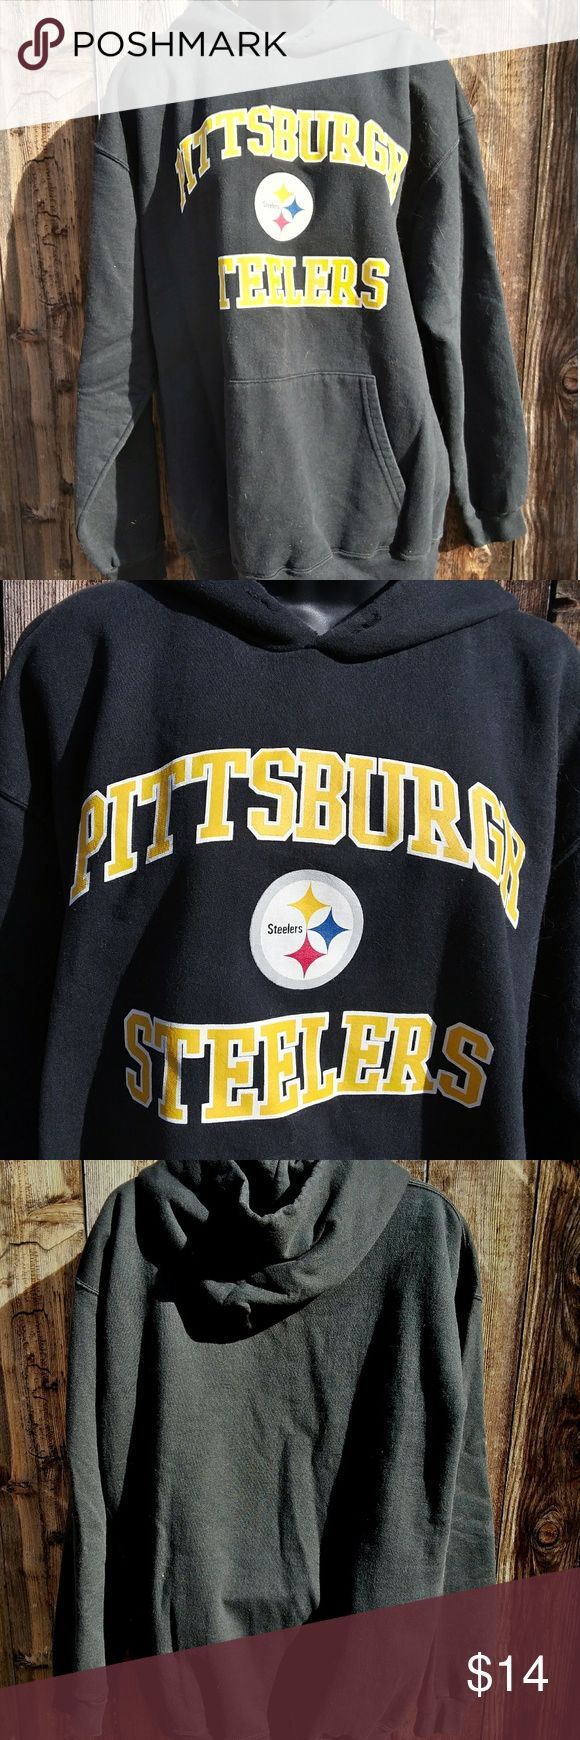 Pittsburgh Steelers hoodie Black Pittsburgh Steelers hoodie Pittsburgh Steelers with logo on chest kangaroo pocket size large unisex in good used condition.  Don't forget to bundle for a discount plus saves you on shipping! NFL Jackets & Coats